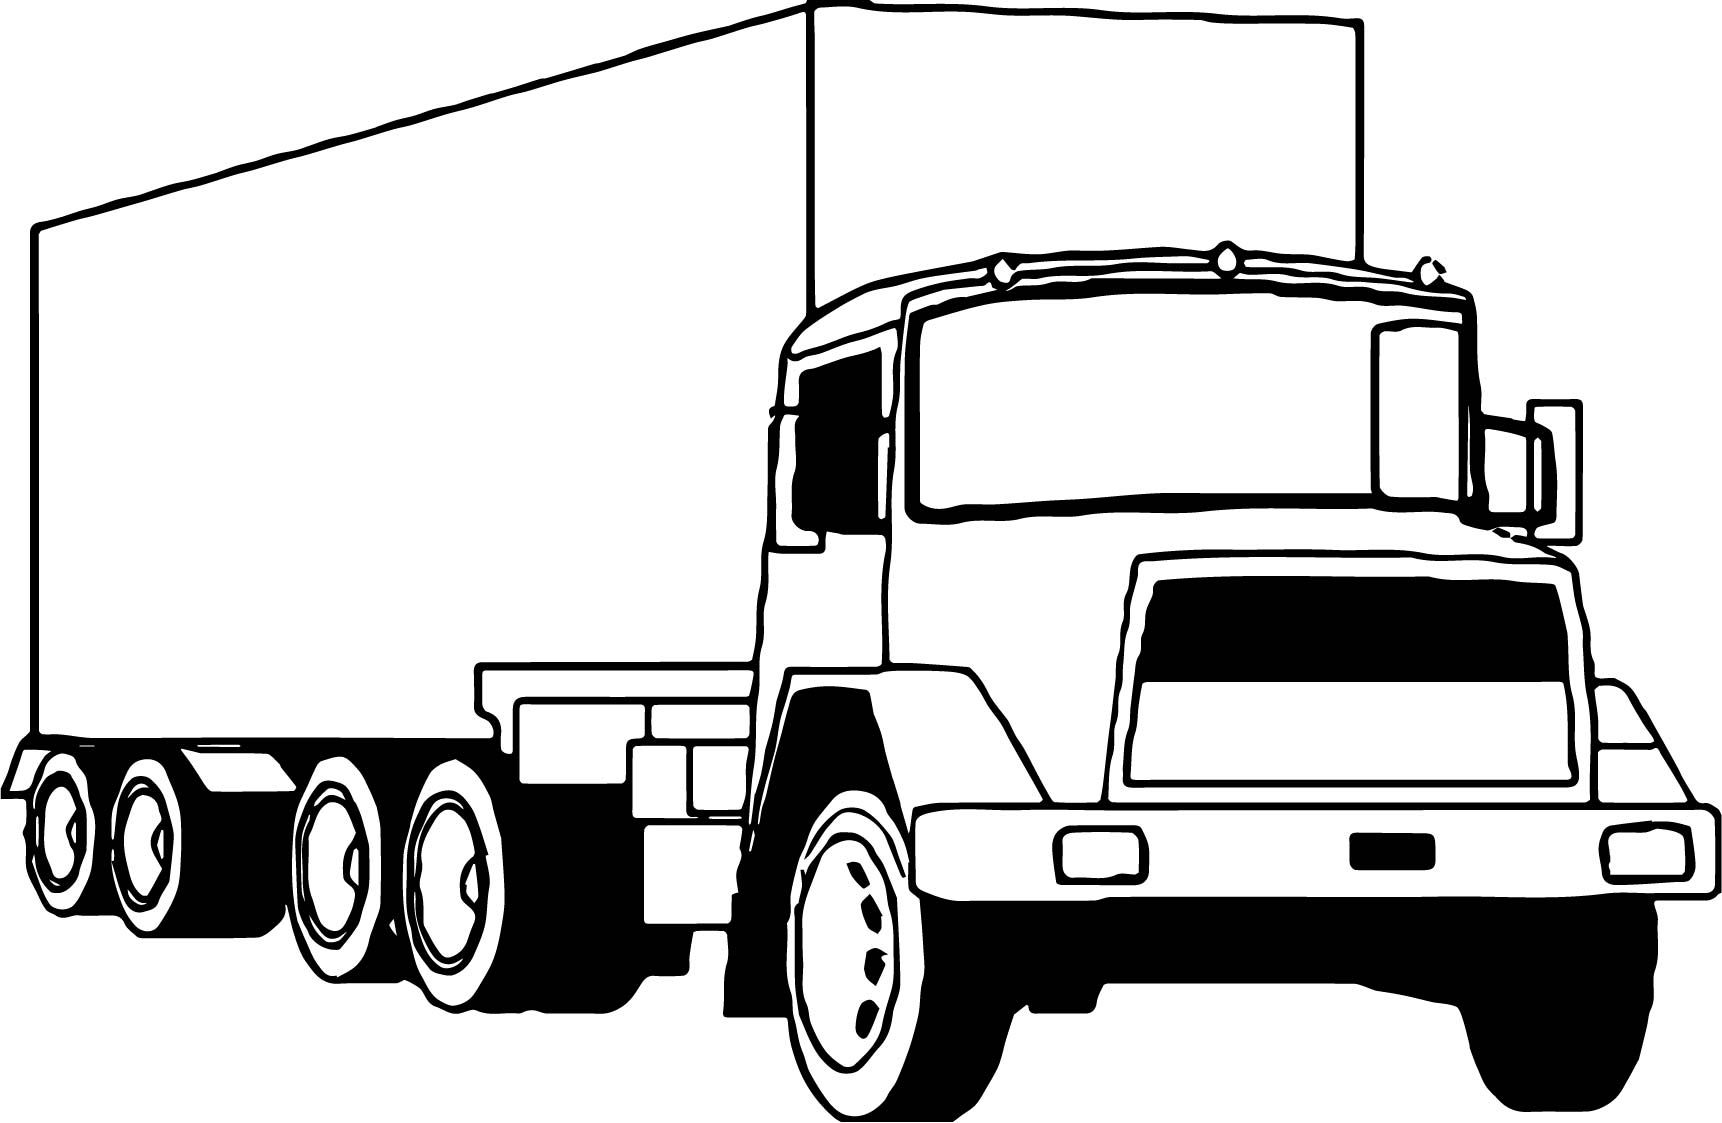 cool truck coloring pages cool truck drawing at getdrawings free download truck pages cool coloring